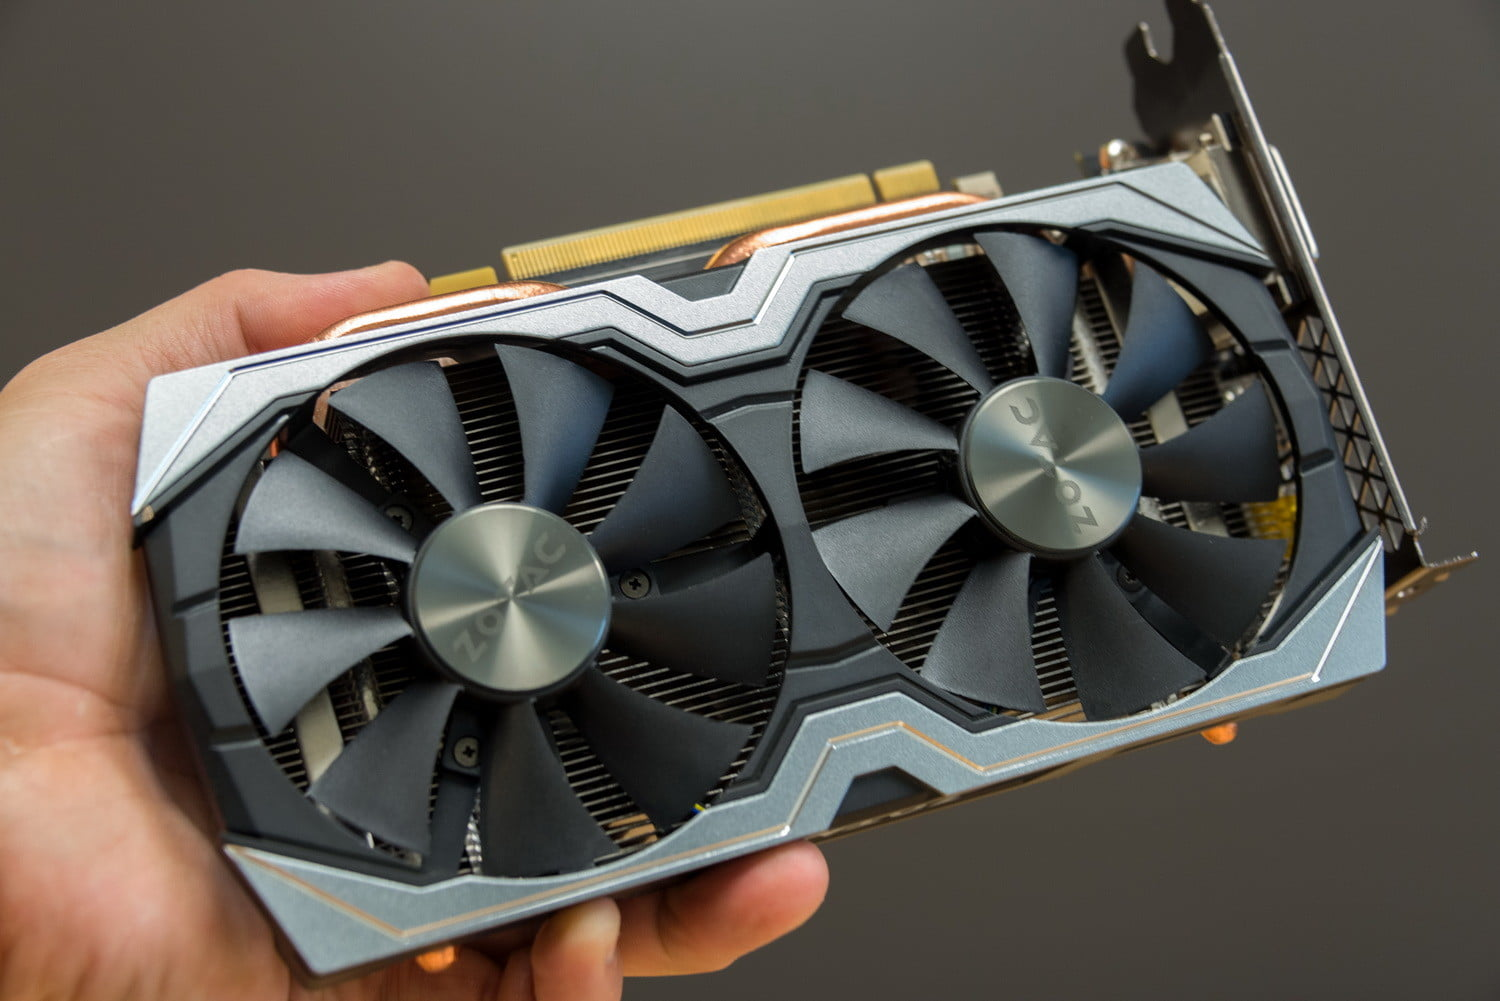 La GeForce GTX 1660 arriverait le 15 mars et la GeForce GTX 1650 le 30 avril